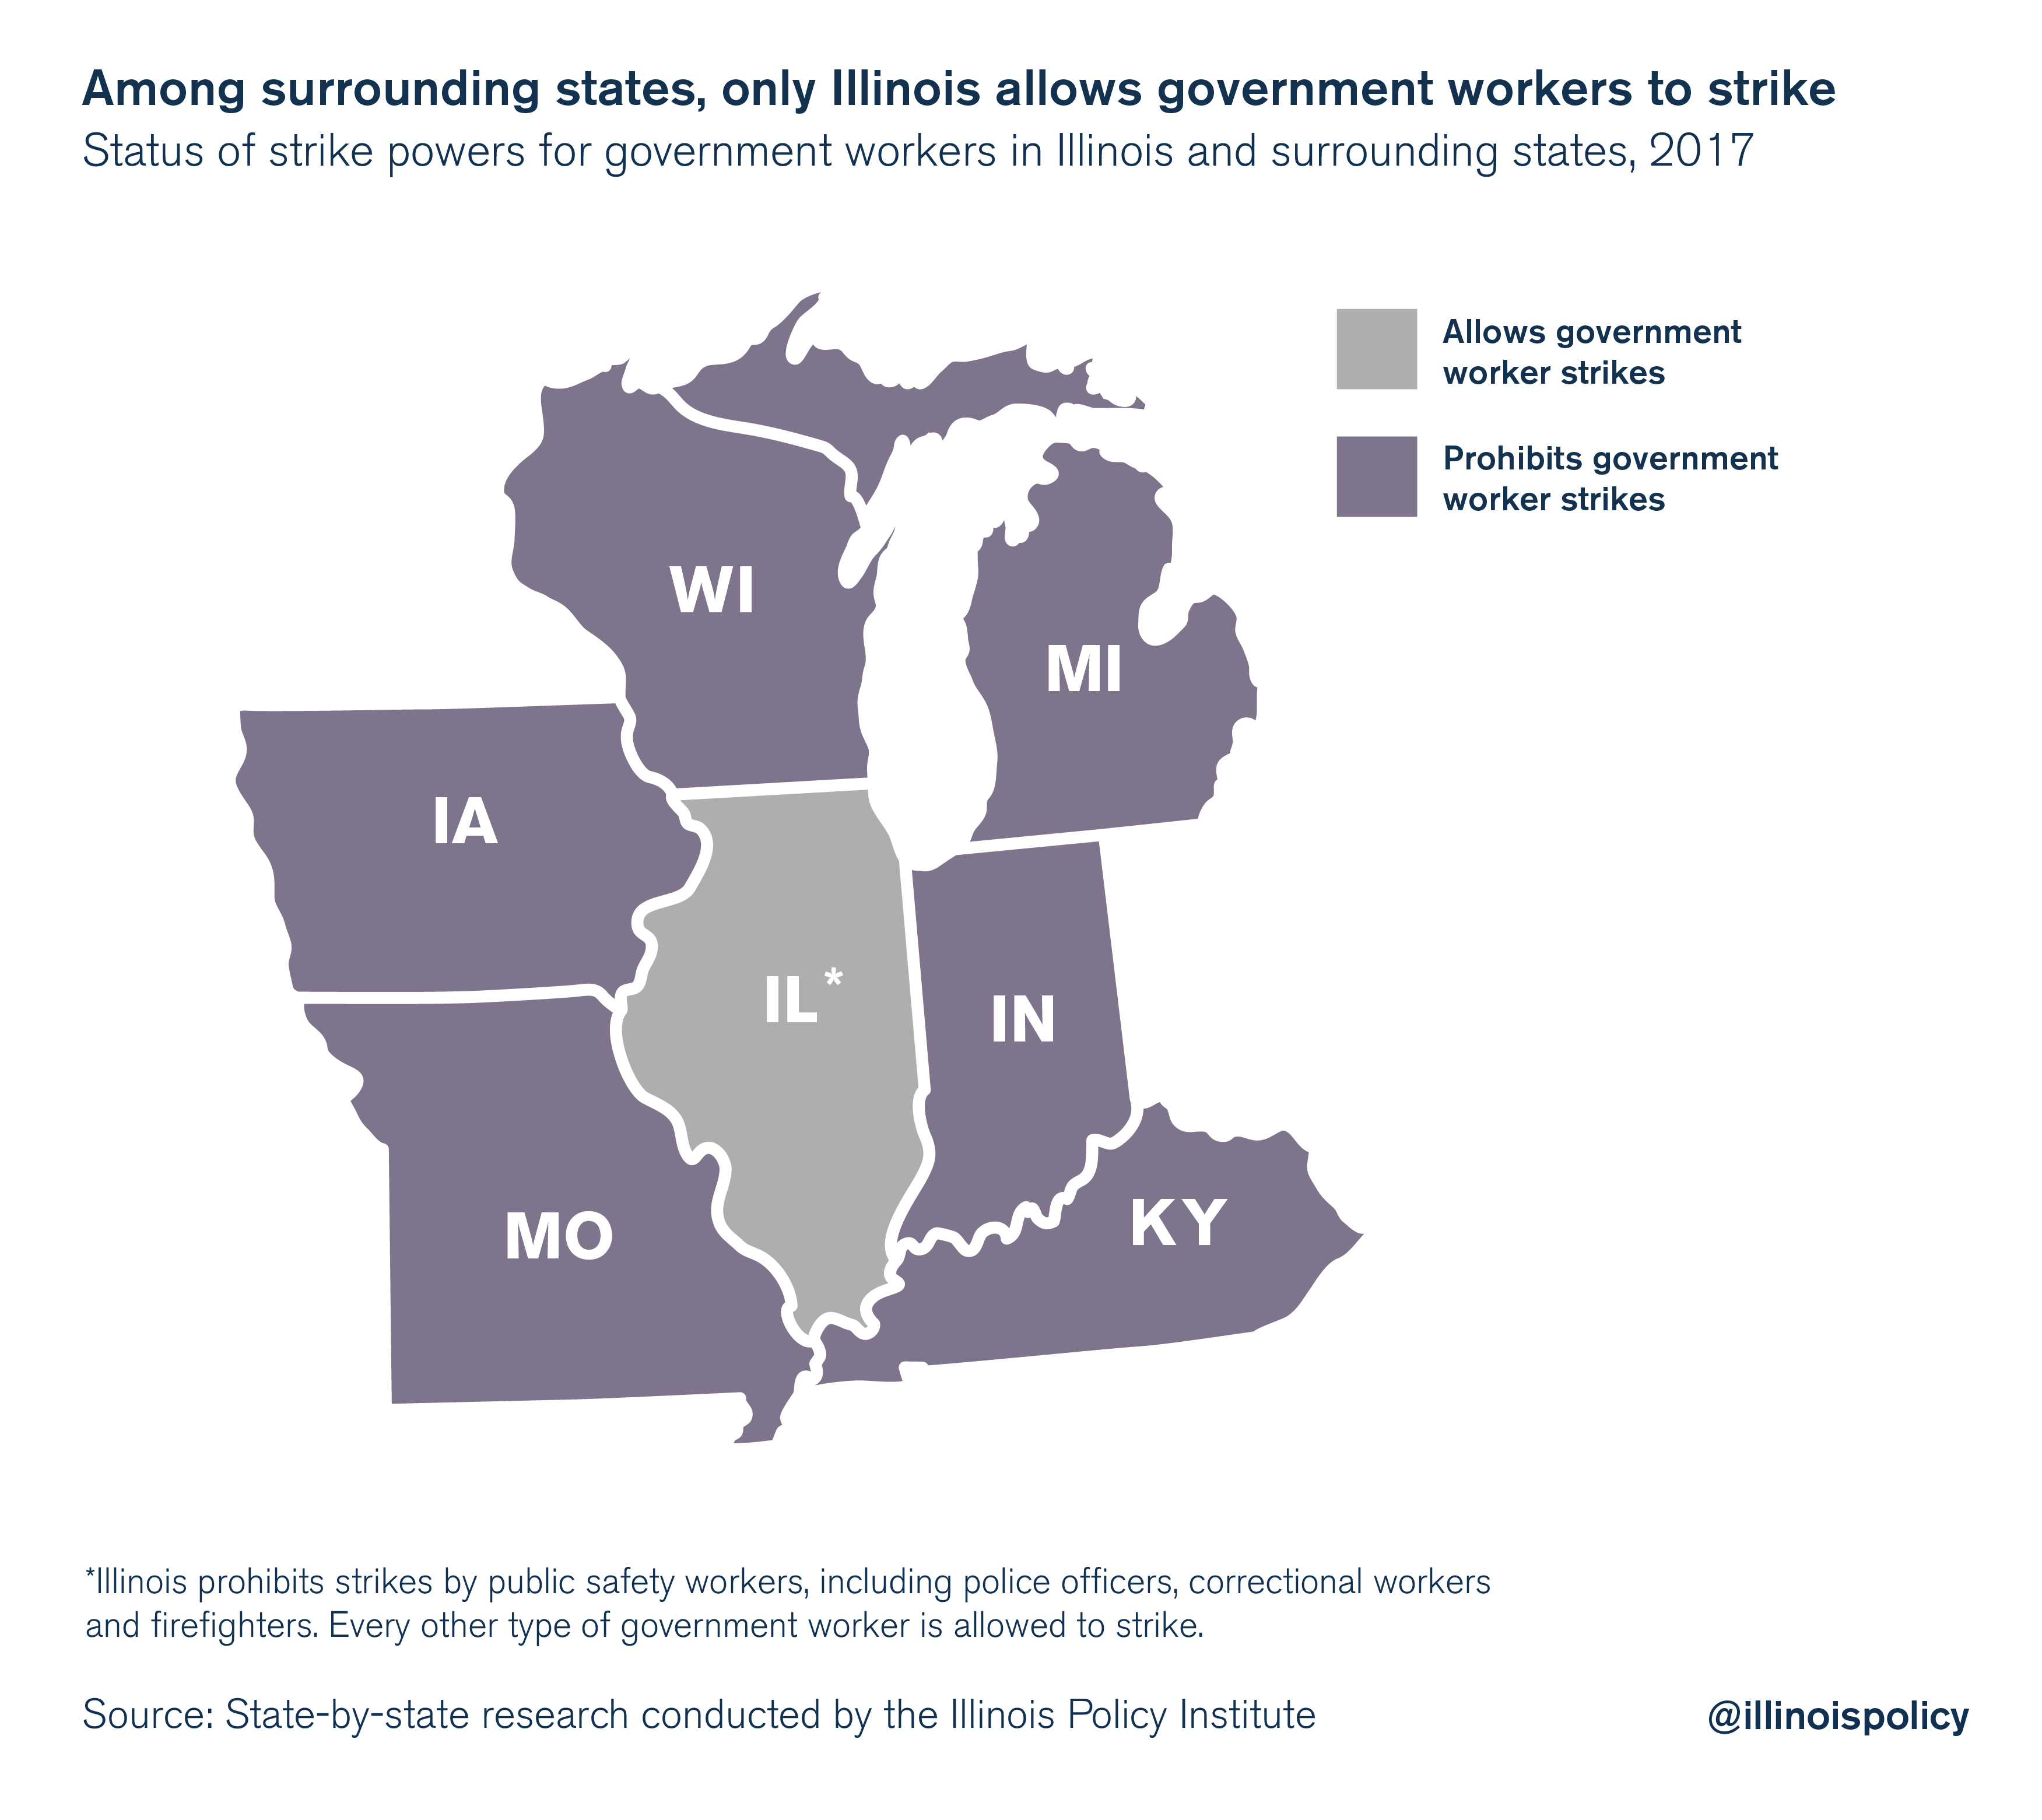 Only Illinois allows government workers to strike